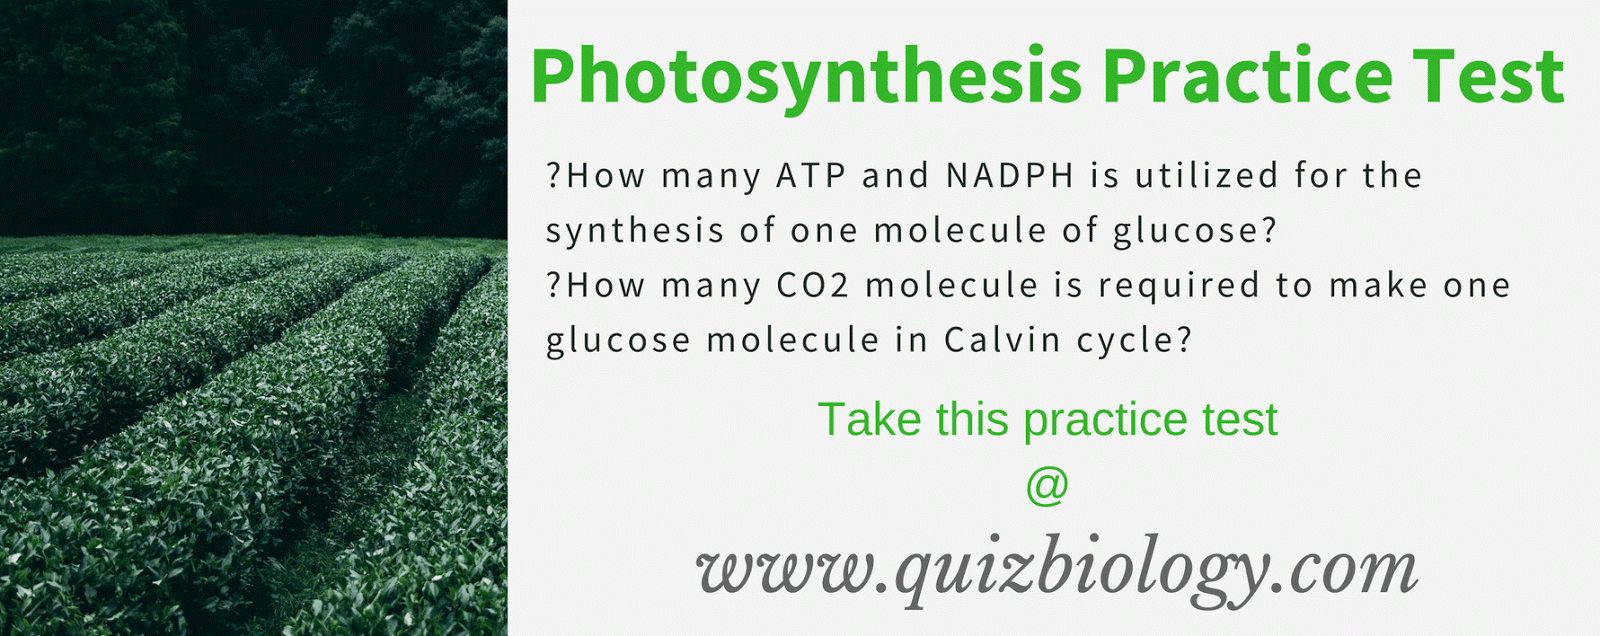 Biology Multiple Choice Quizzes: Photosynthesis Practice Test